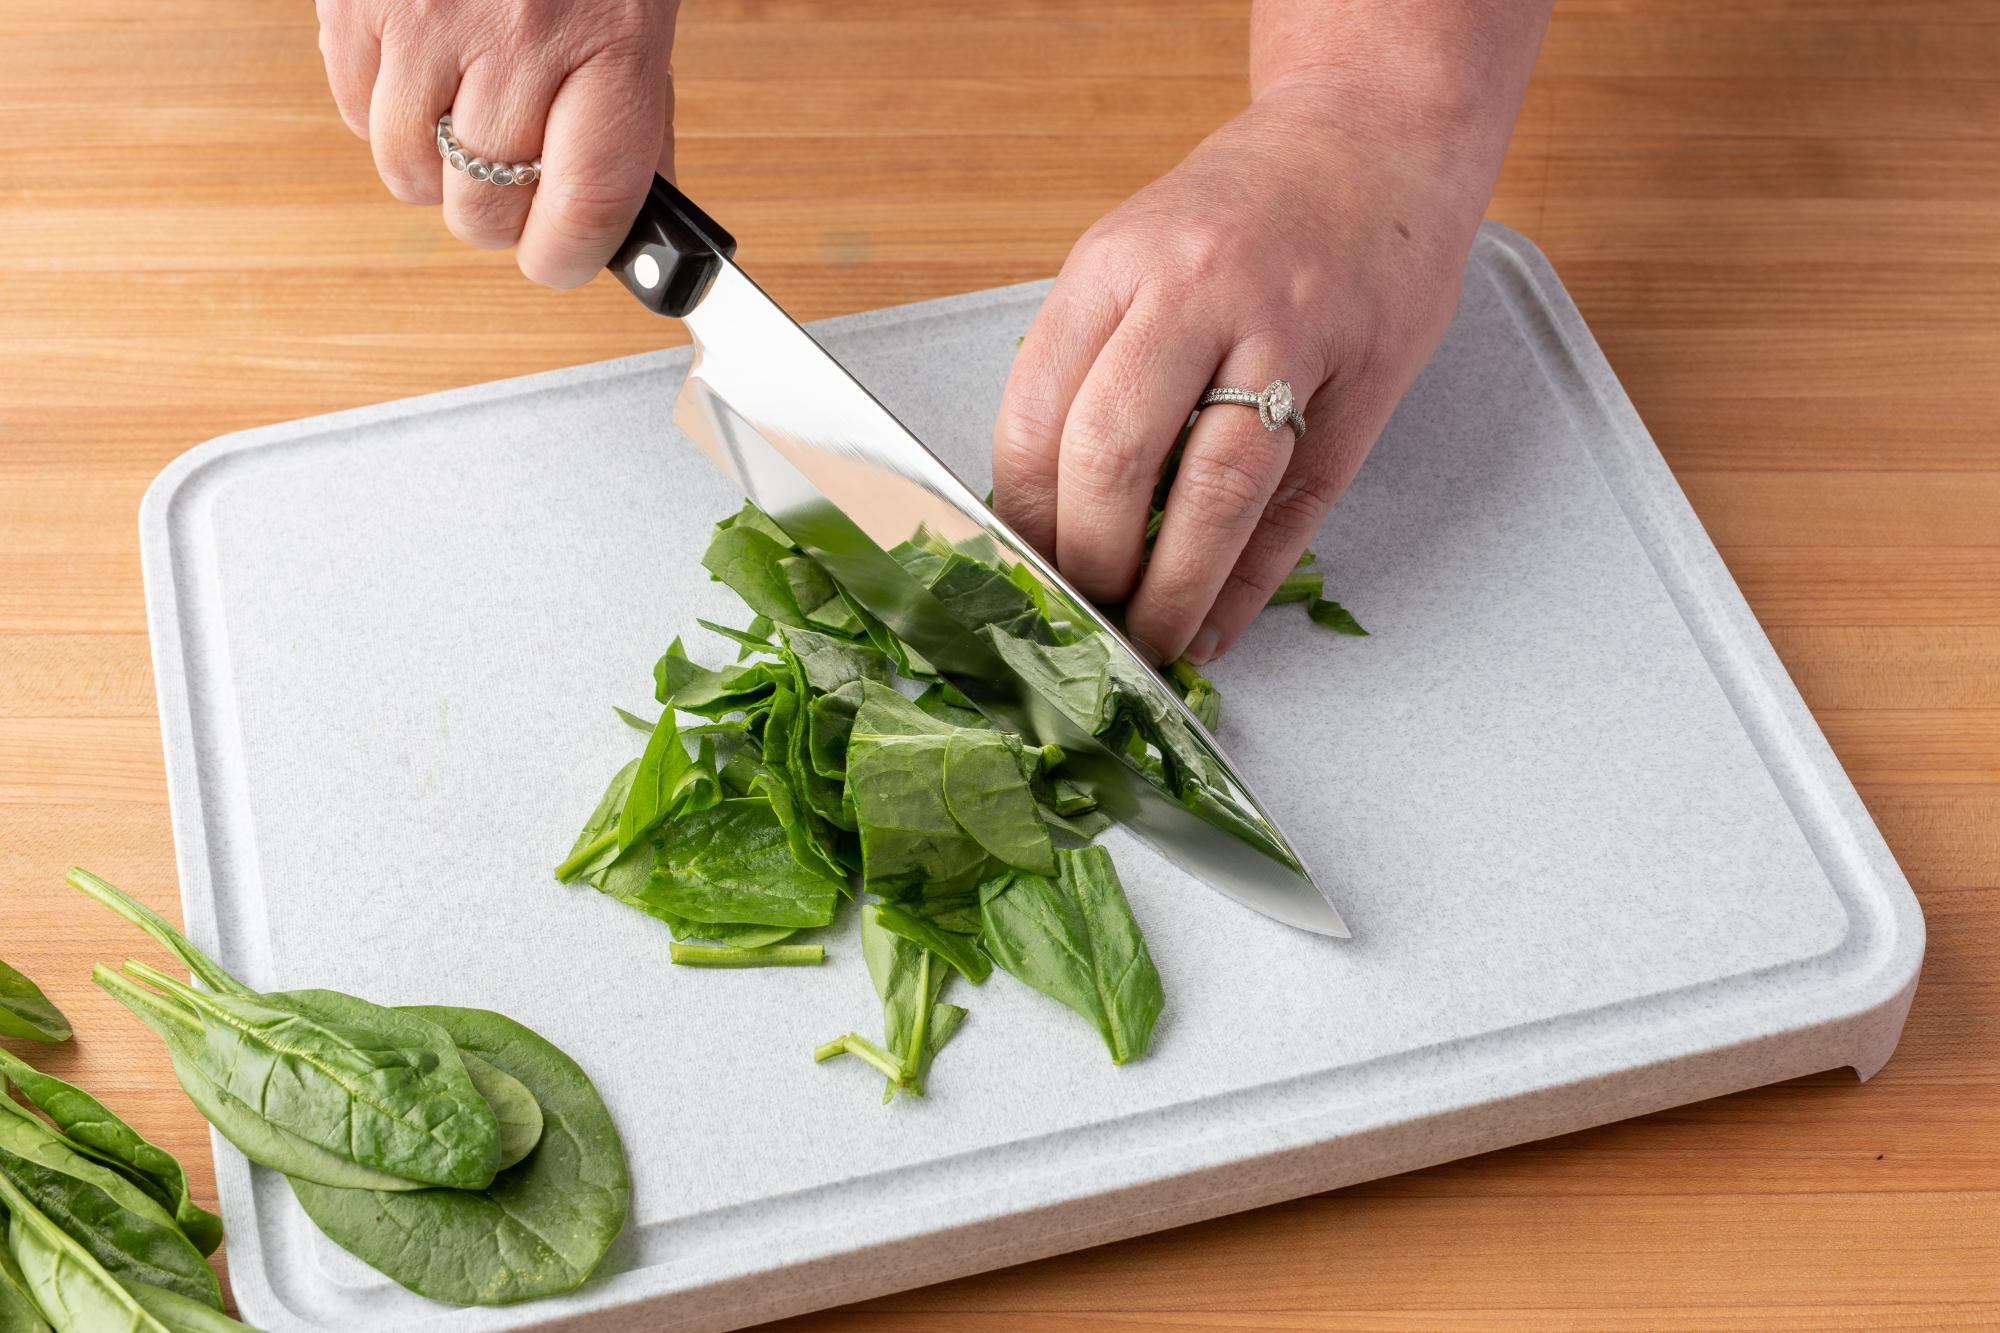 Chop the spinach with a Petite Chef.